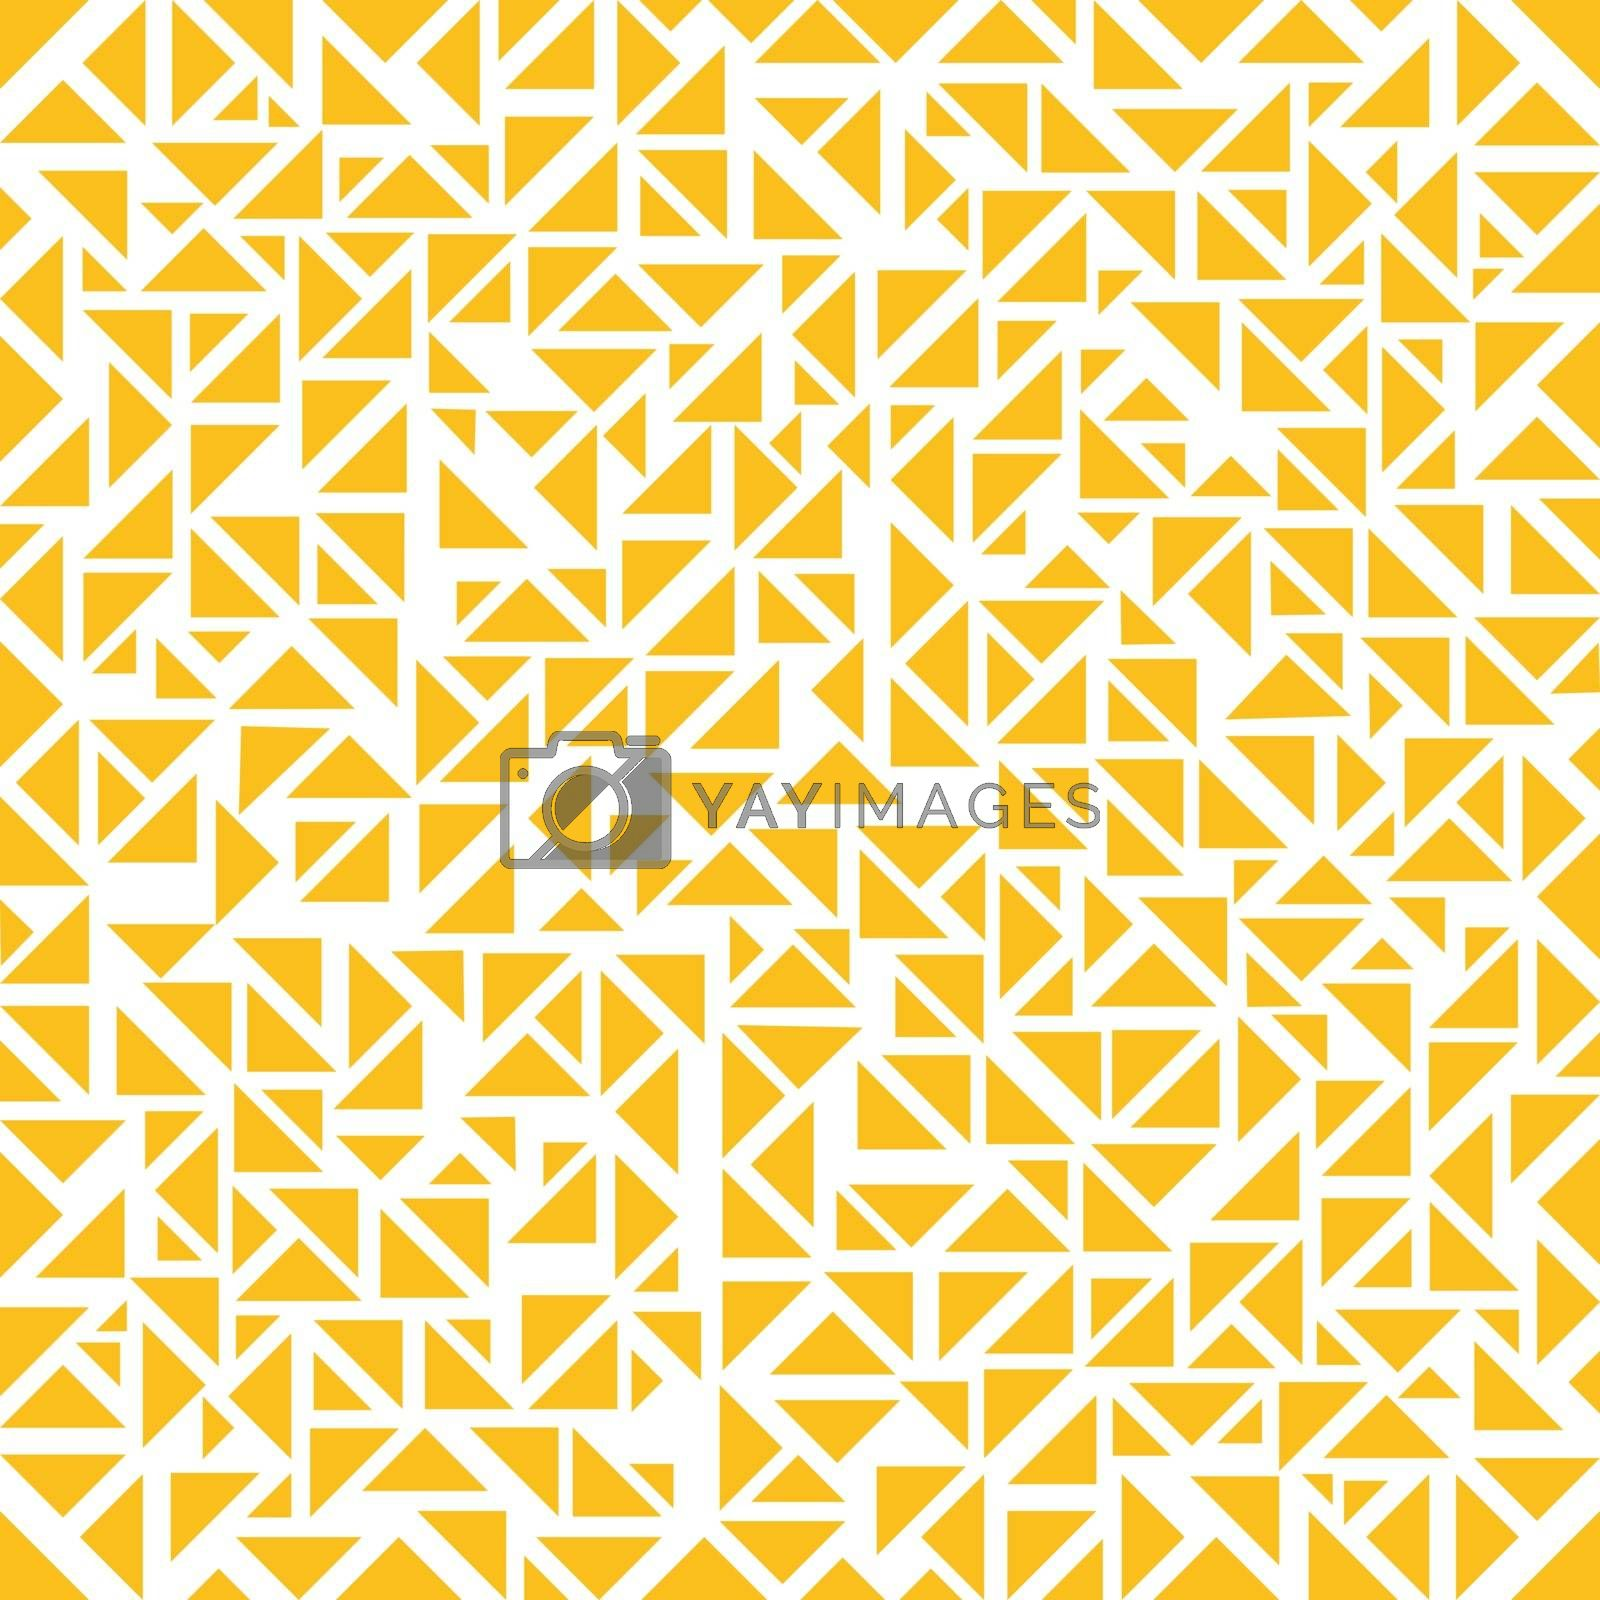 Abstract yellow triangles random pattern on white background. Vector illustration